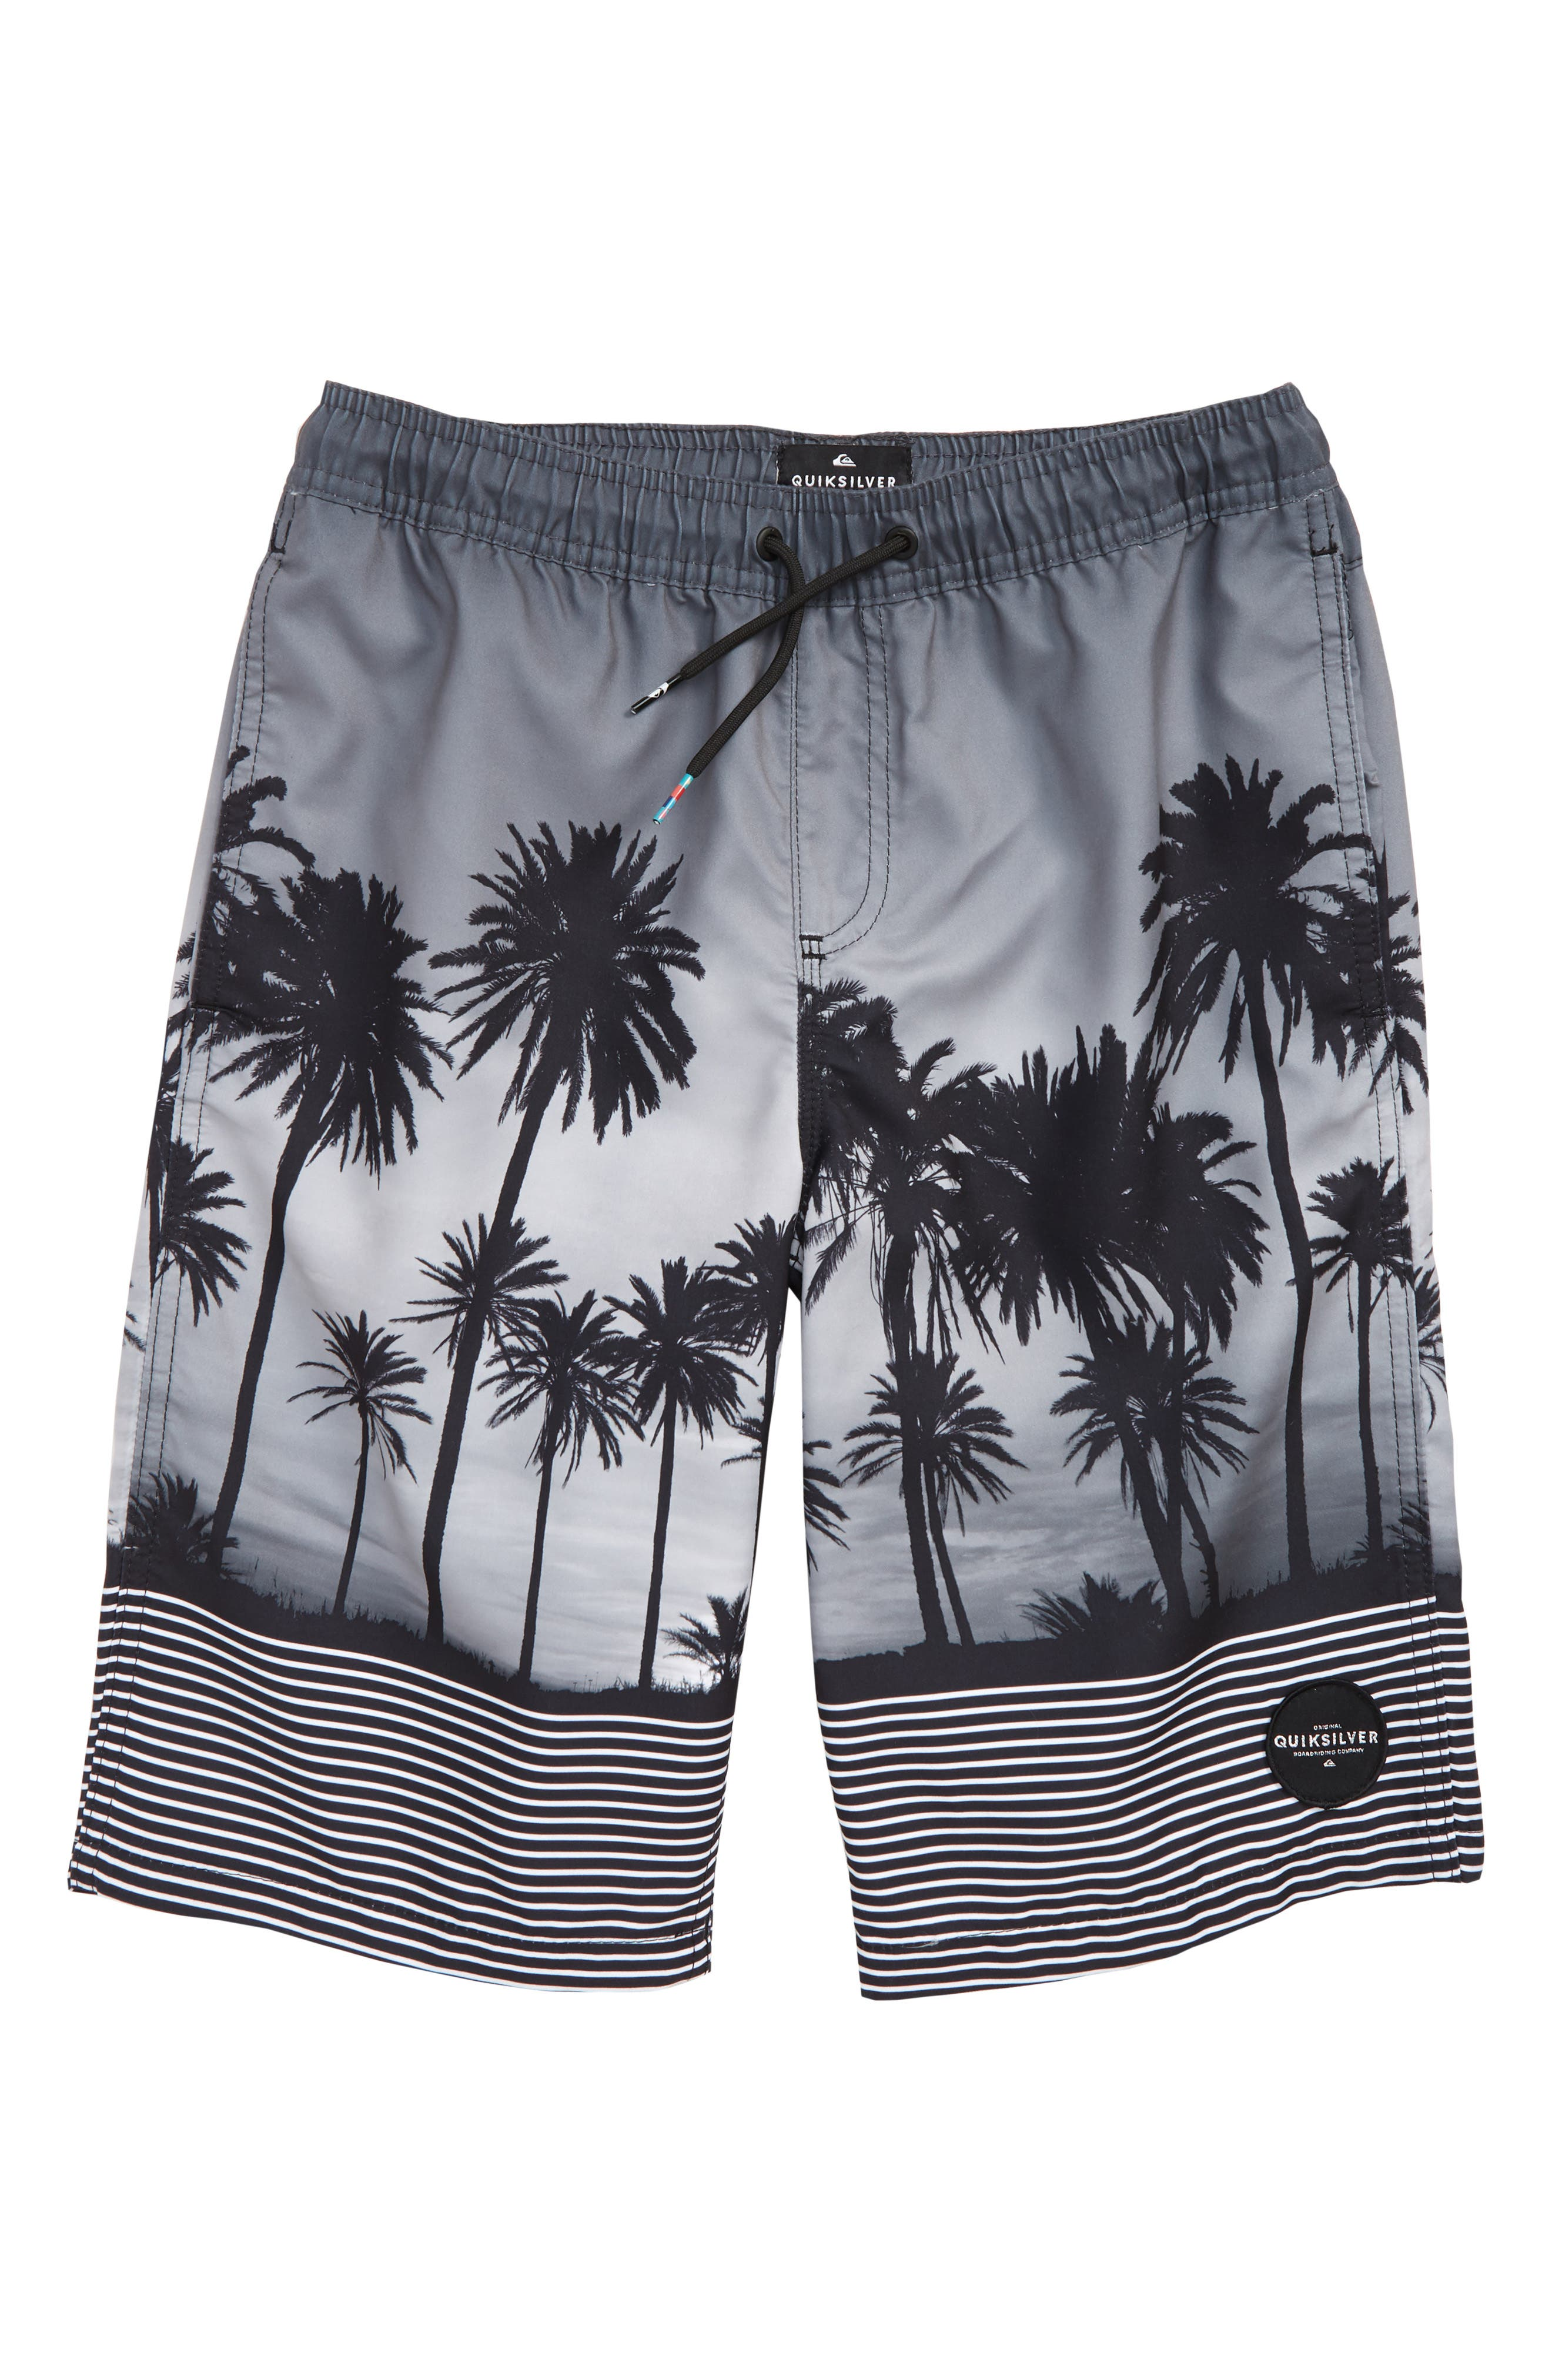 Sunset Vibes Volley Shorts,                         Main,                         color, Black